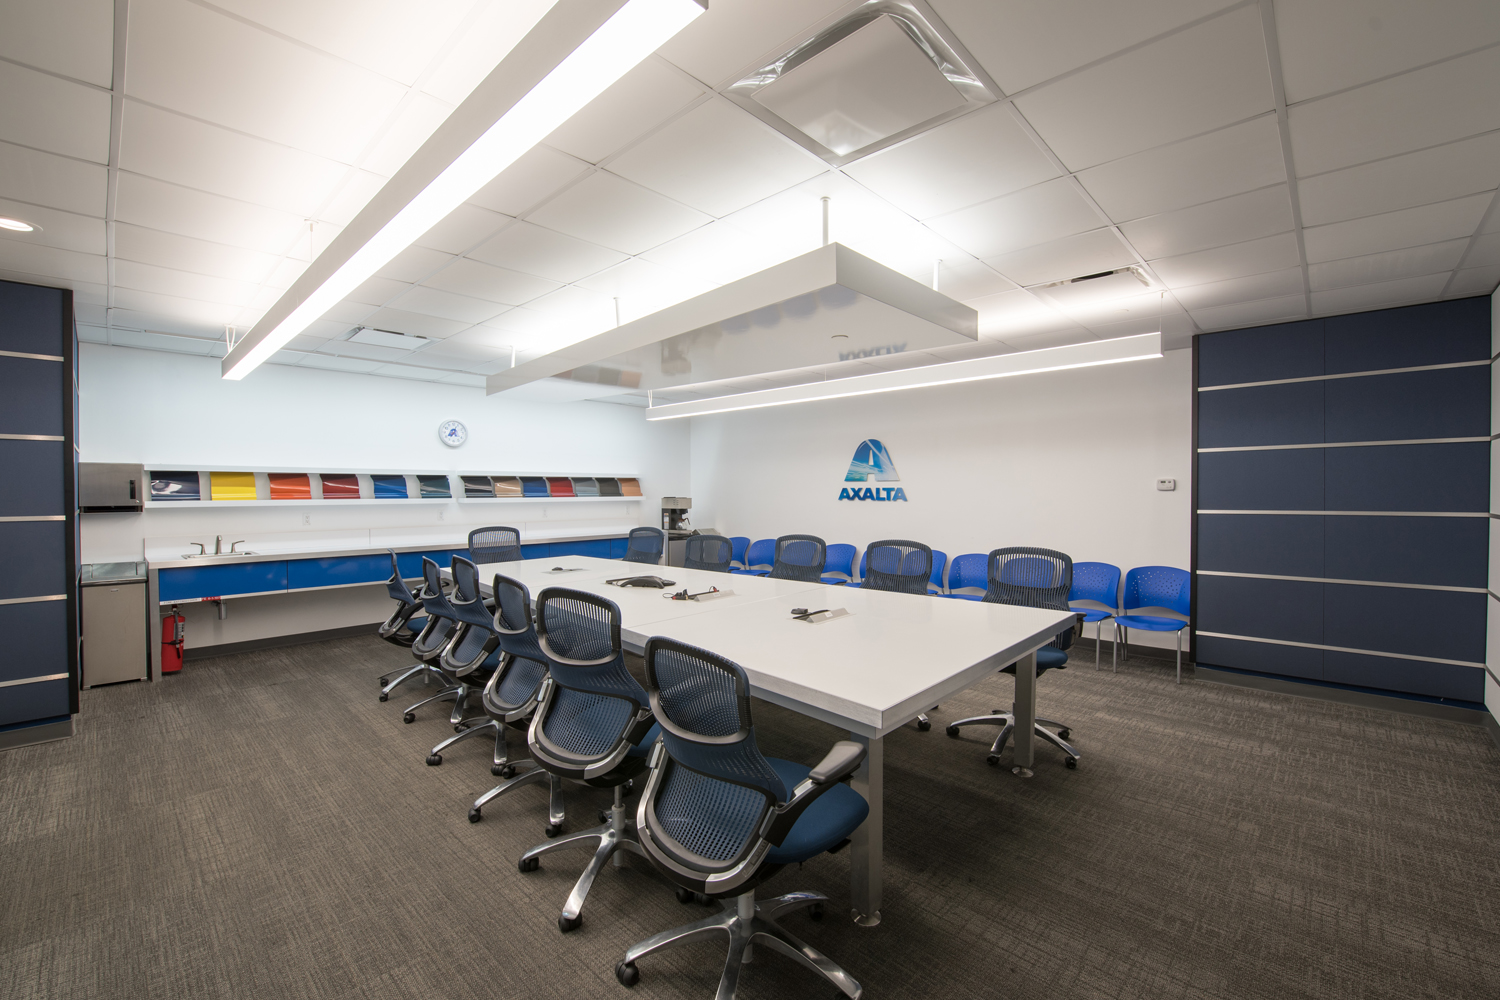 Axalta_ATC_corporate_conference_room_design.jpg